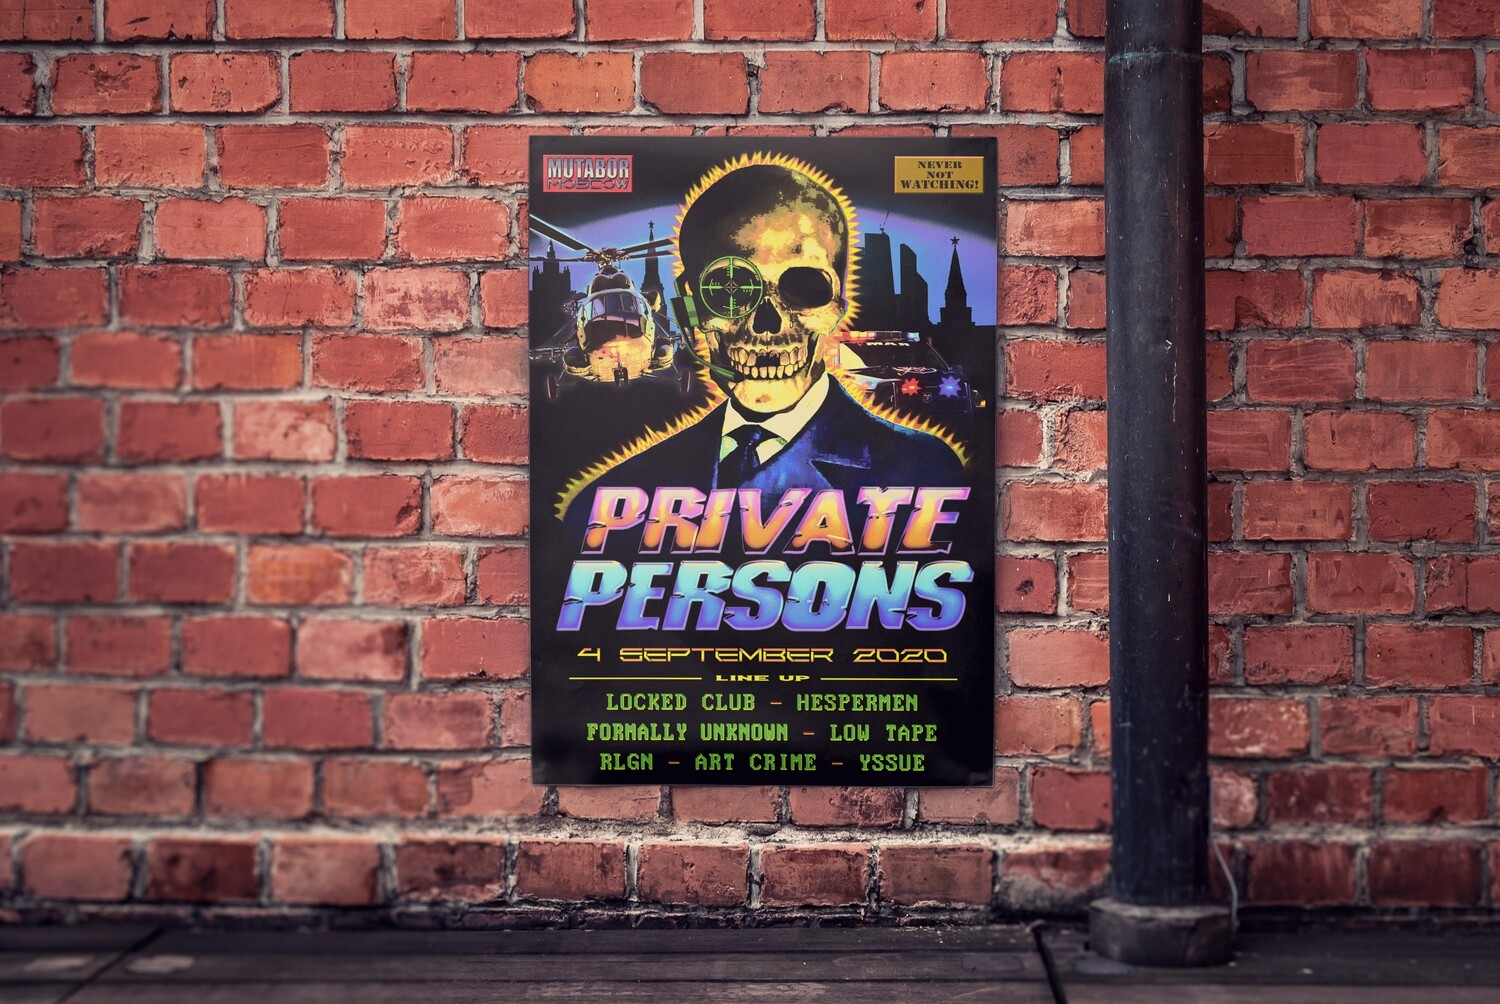 """""""PRIVATE PERSONS x MUTABOR"""" 04.09.2020 (A1 POSTER)"""